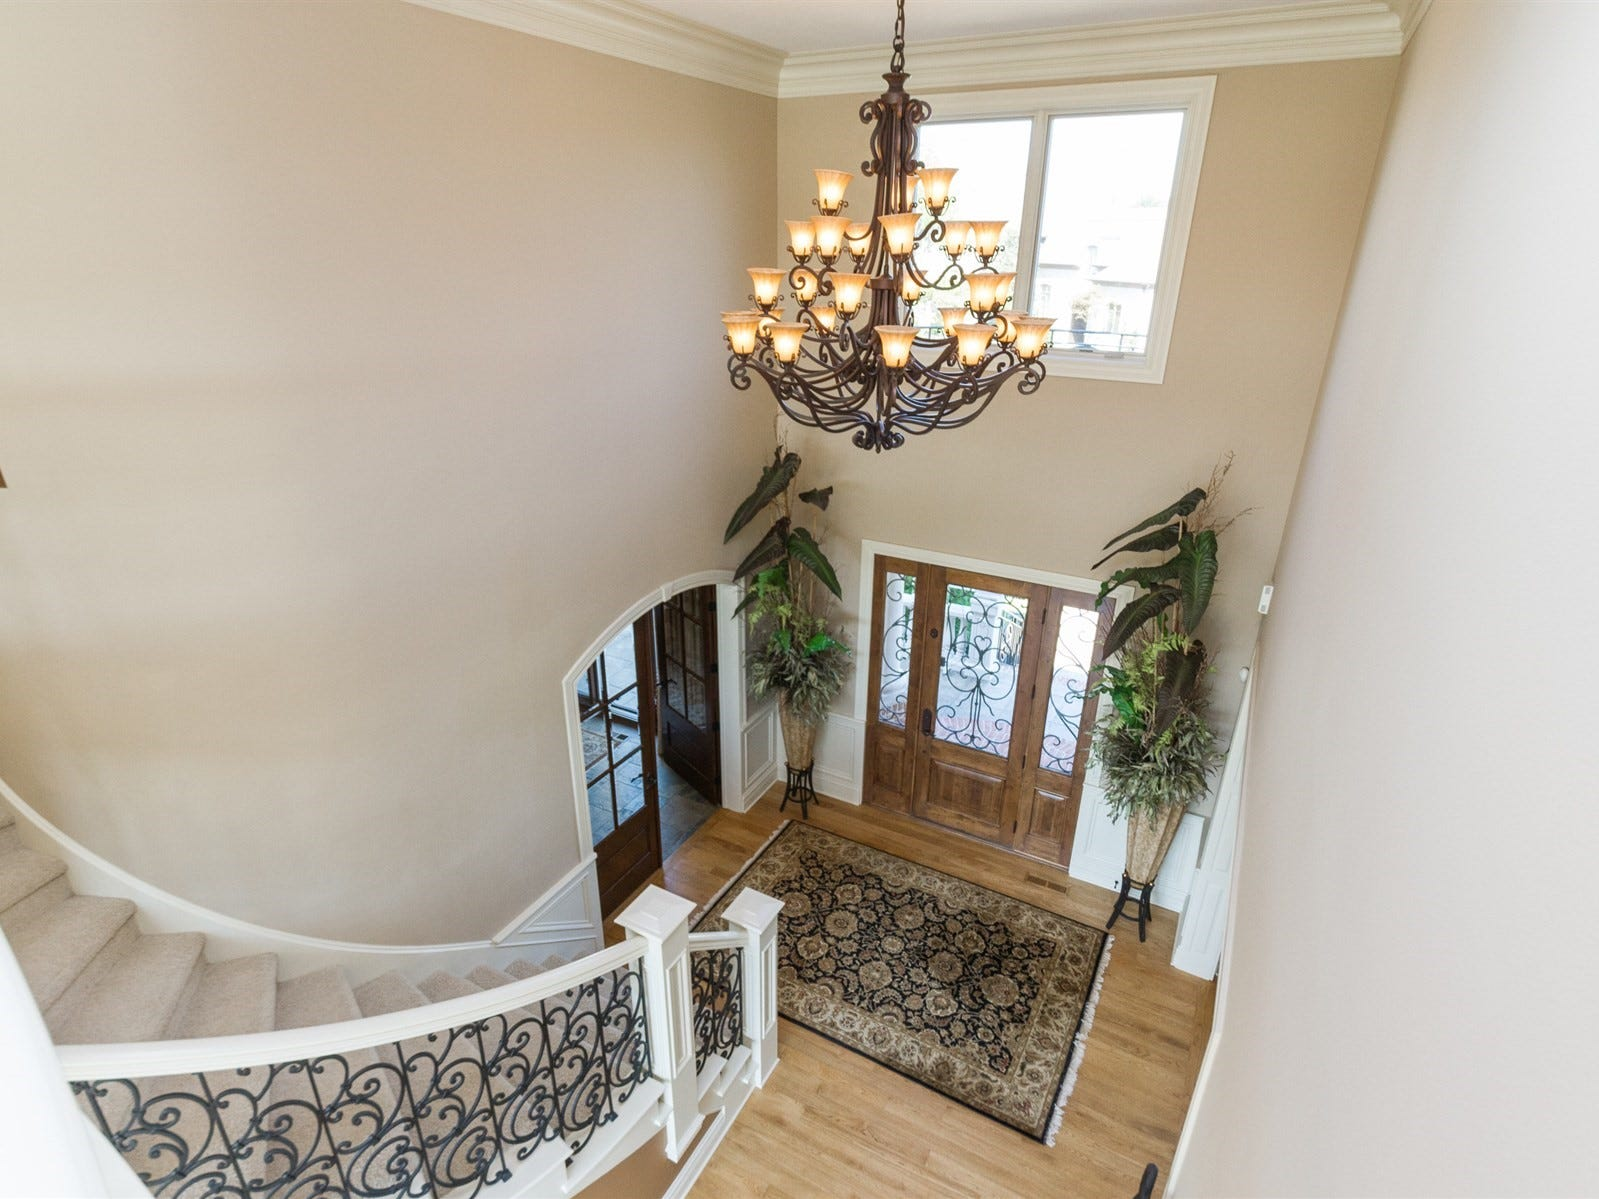 View of the foyer